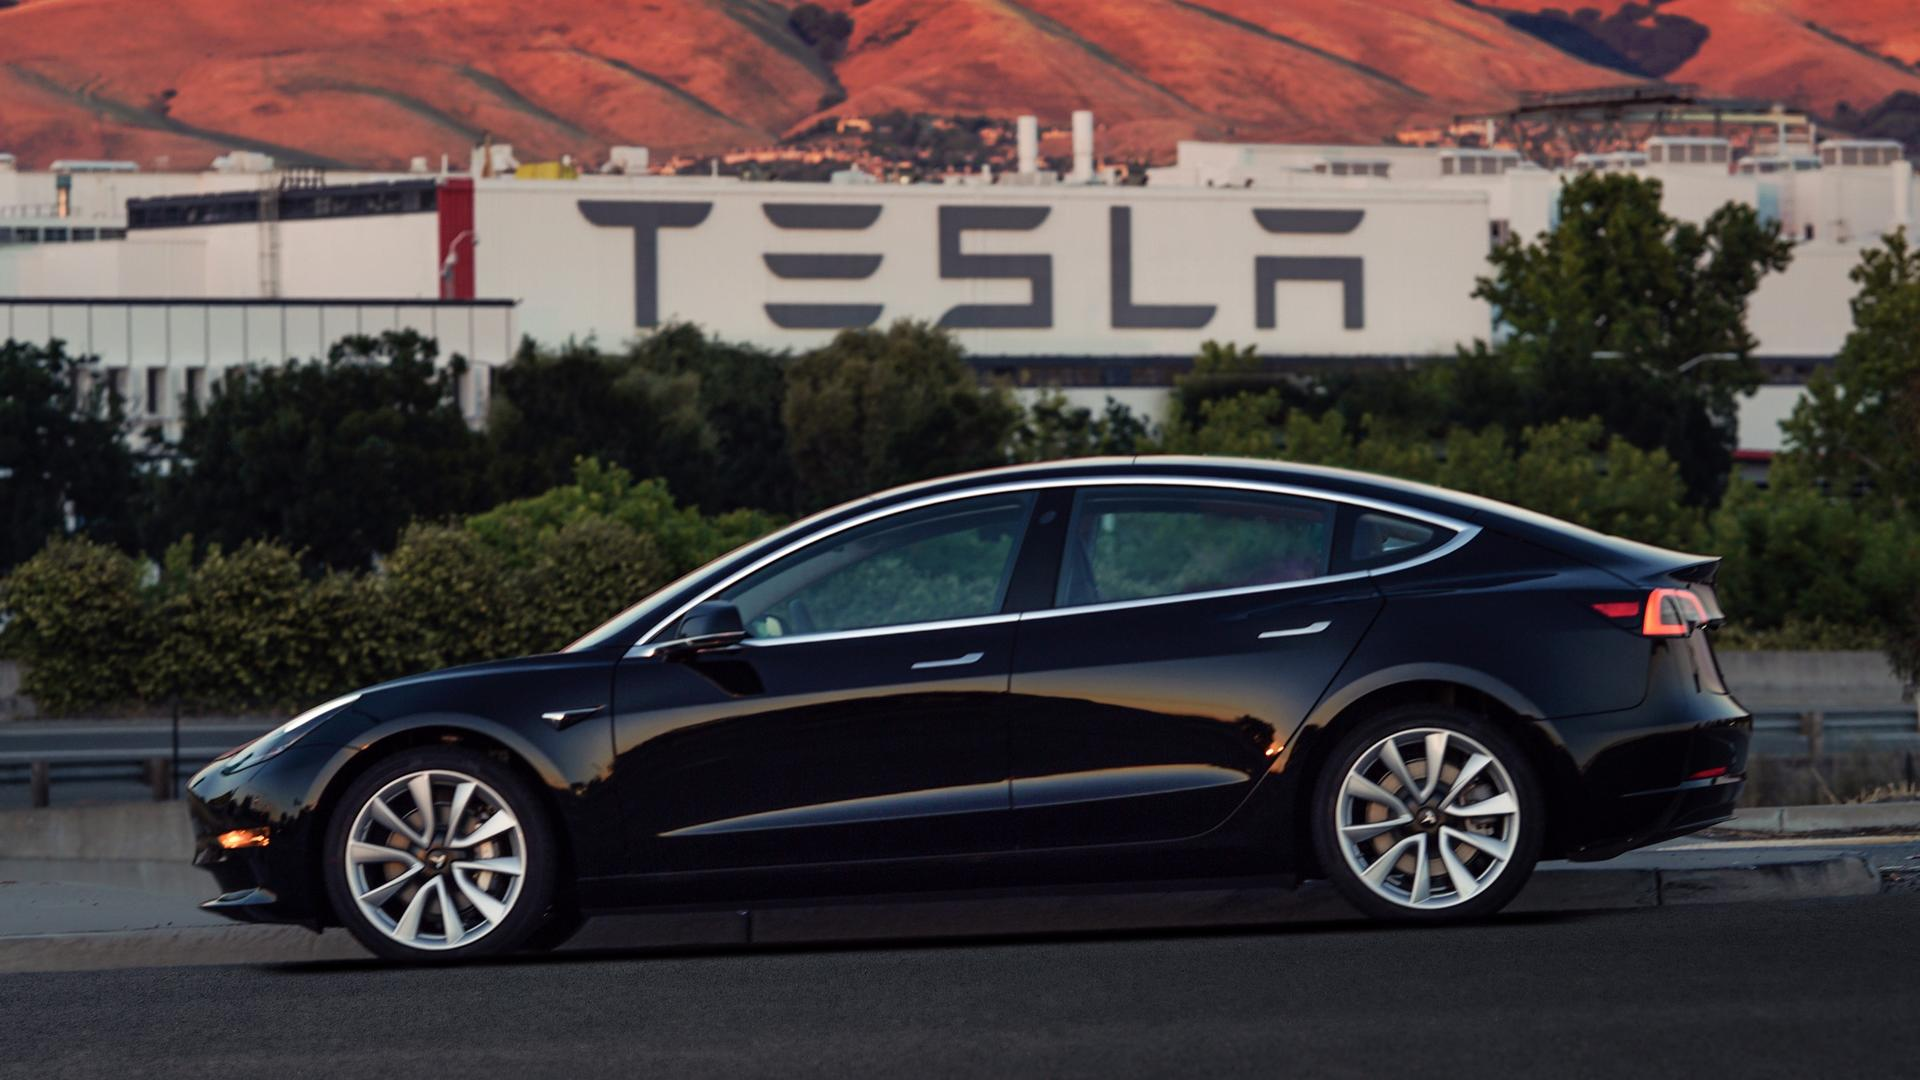 Tesla Supplier Hints At Doubling Parts Production For Model 3